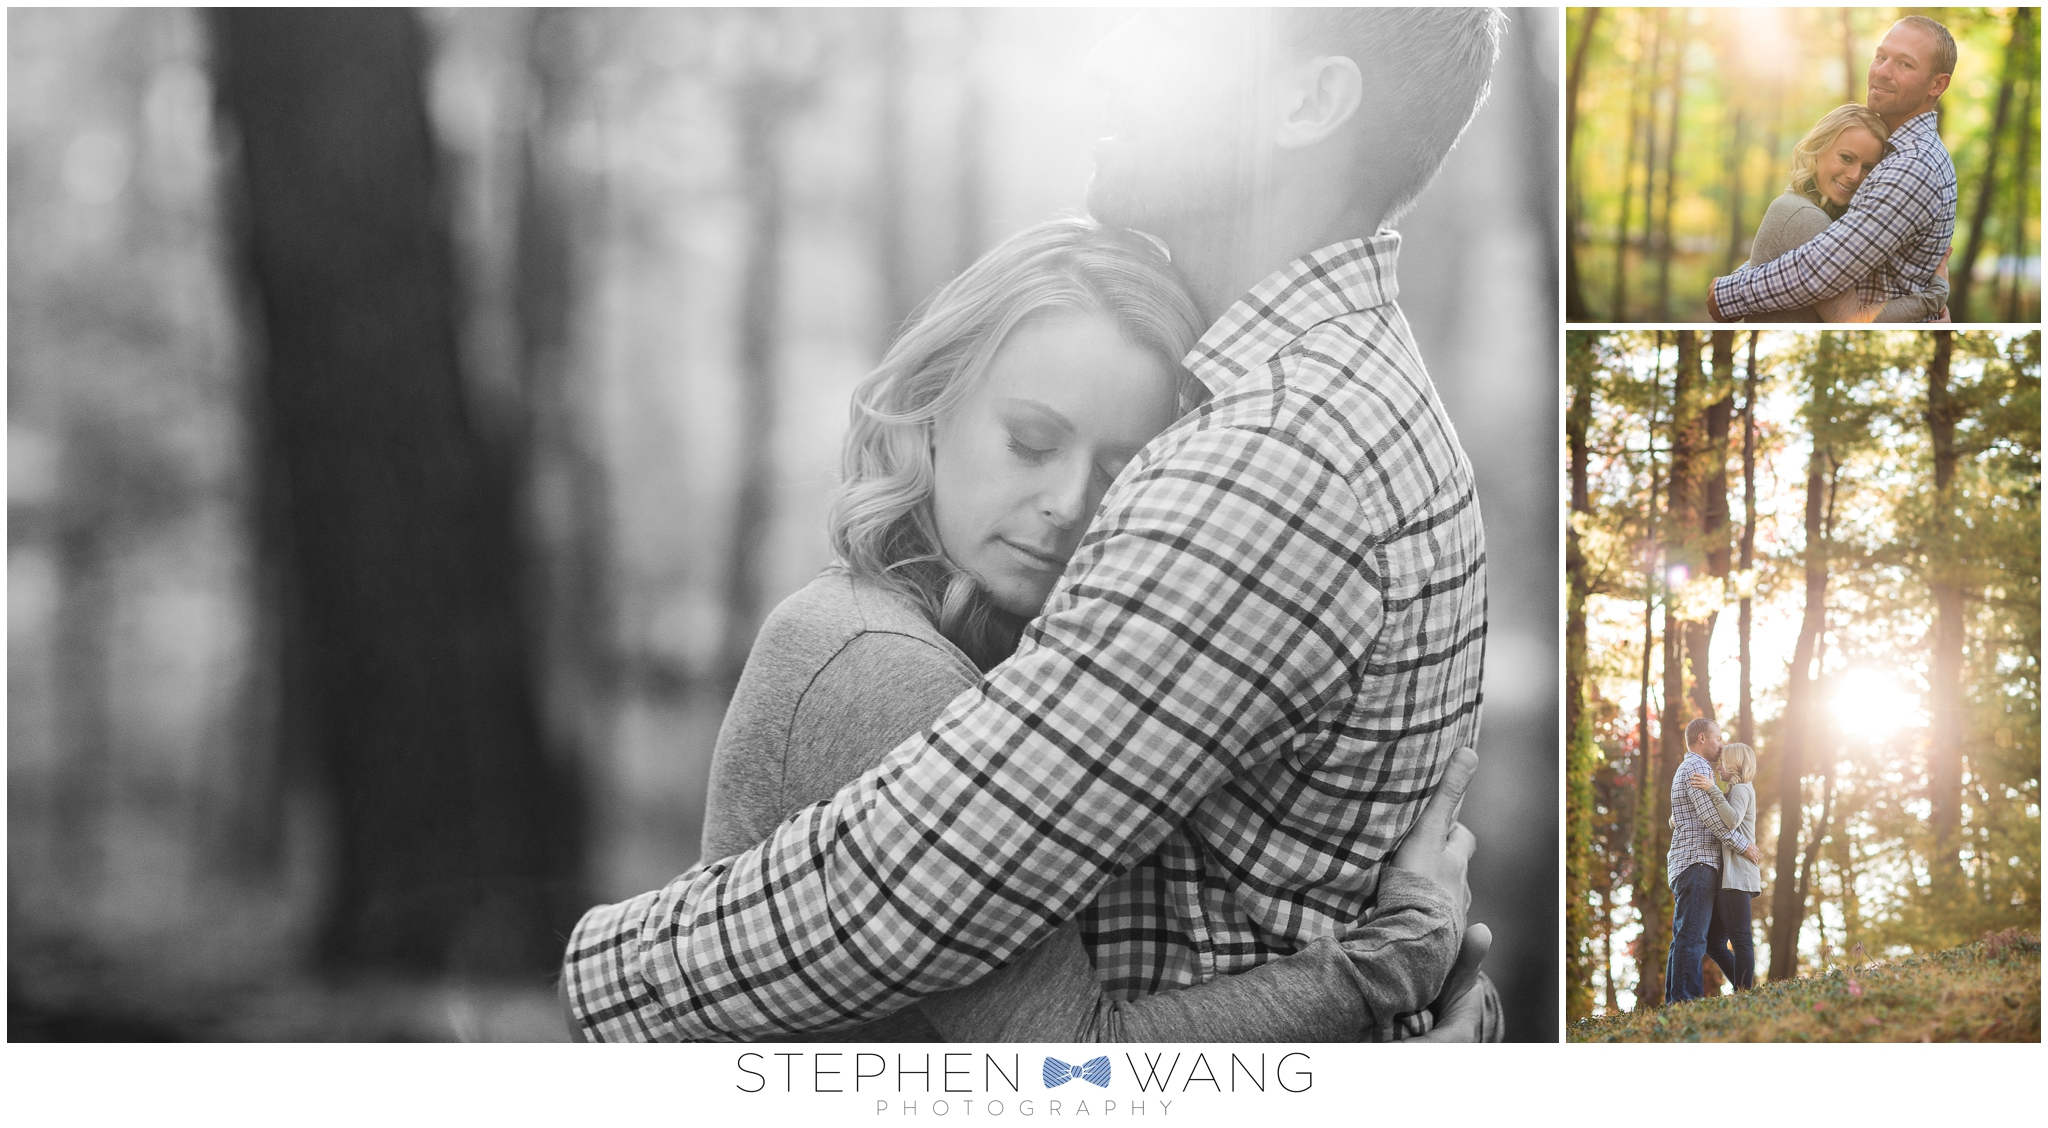 Stephen Wang Photography Connecticut Engagement Session photographer Wadsworth Mansion Park Middletown Autum Fall Foliage CT New Haven-10-23_0005.jpg